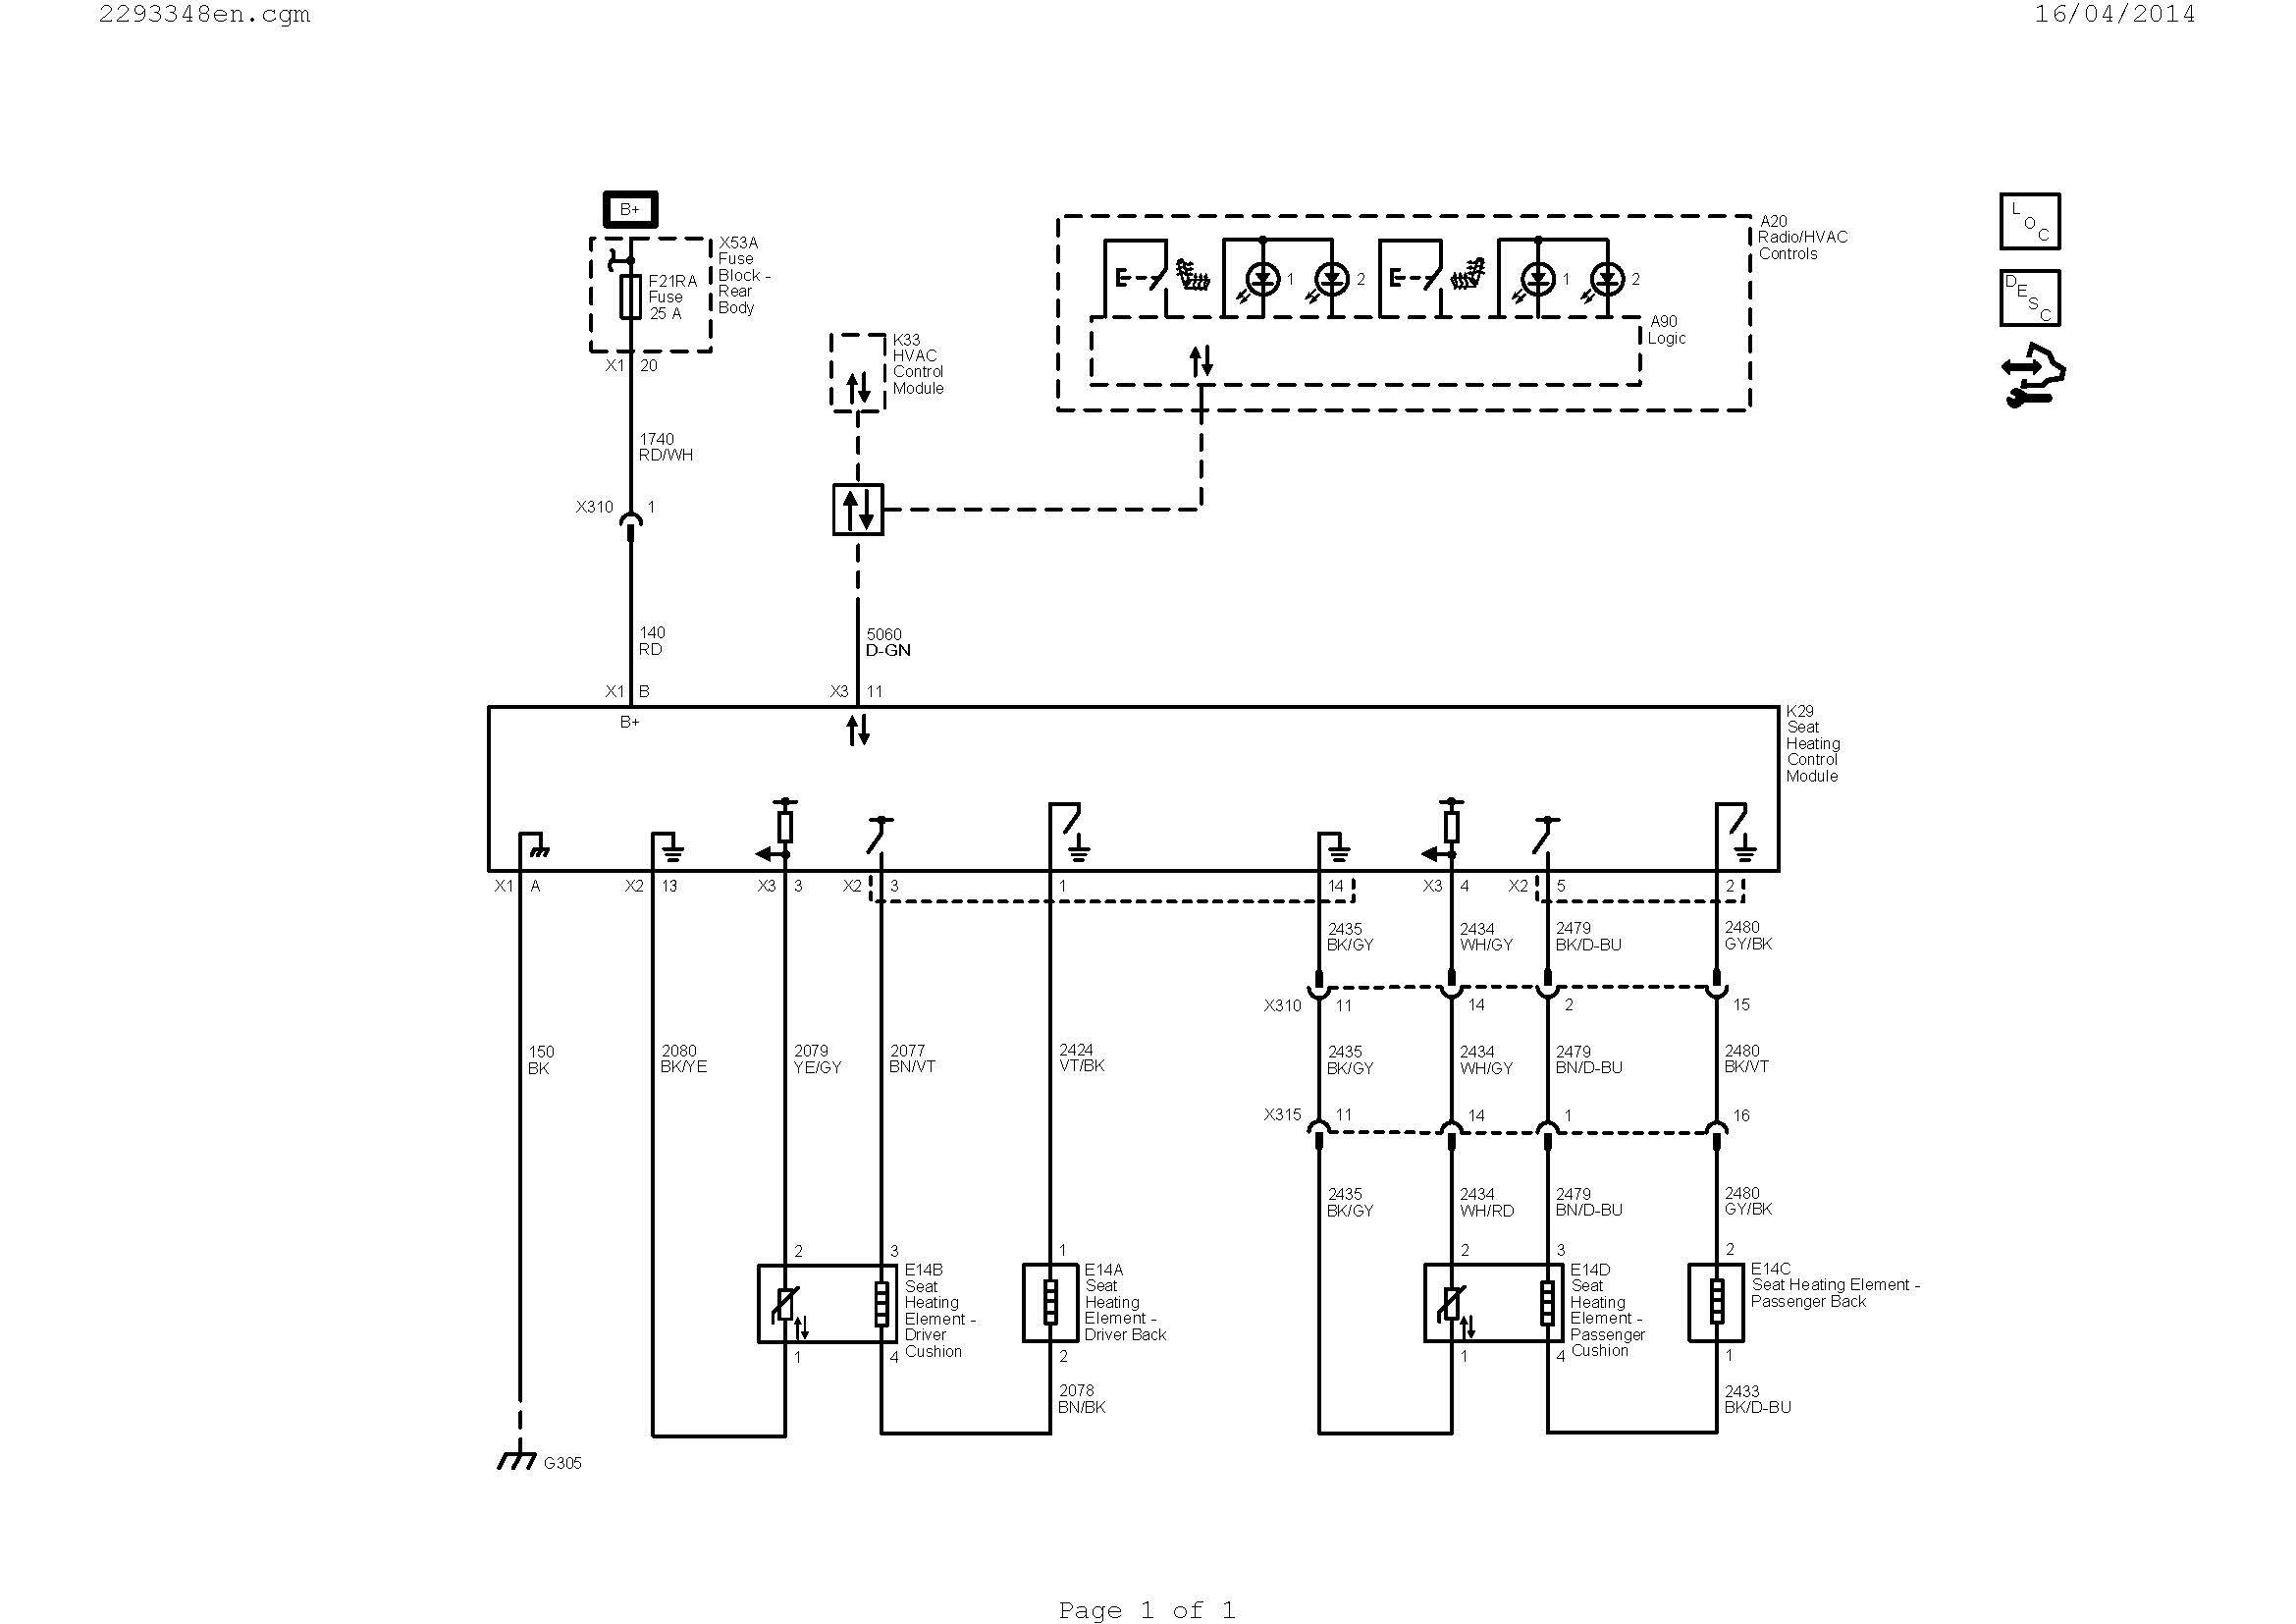 single stage thermostat wiring diagram Collection-home thermostat wiring diagram Download Wiring A Ac Thermostat Diagram New Wiring Diagram Ac Valid DOWNLOAD Wiring Diagram 15-e